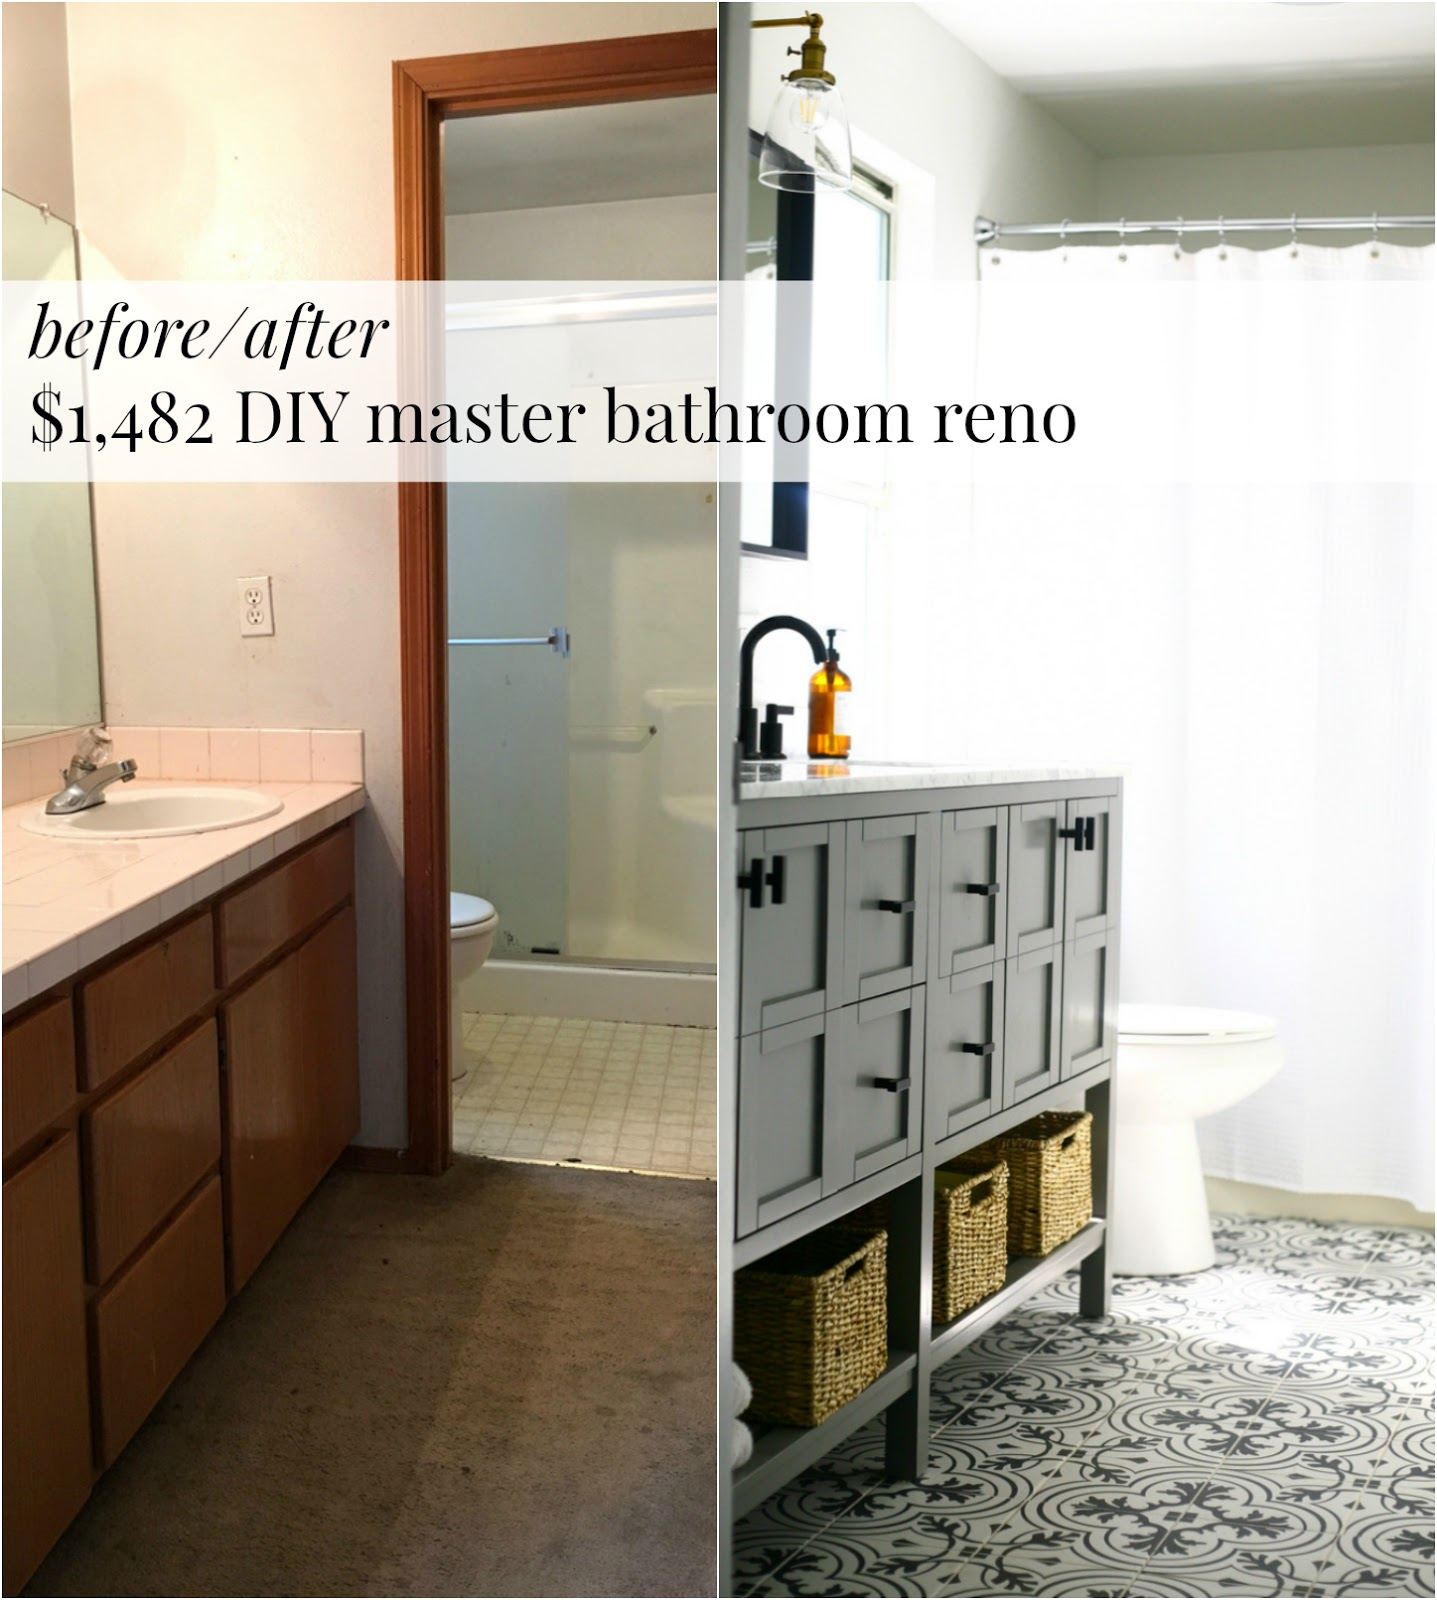 ... Reveal, Budget, And Sources: $1,482 Master Bathroom Reno